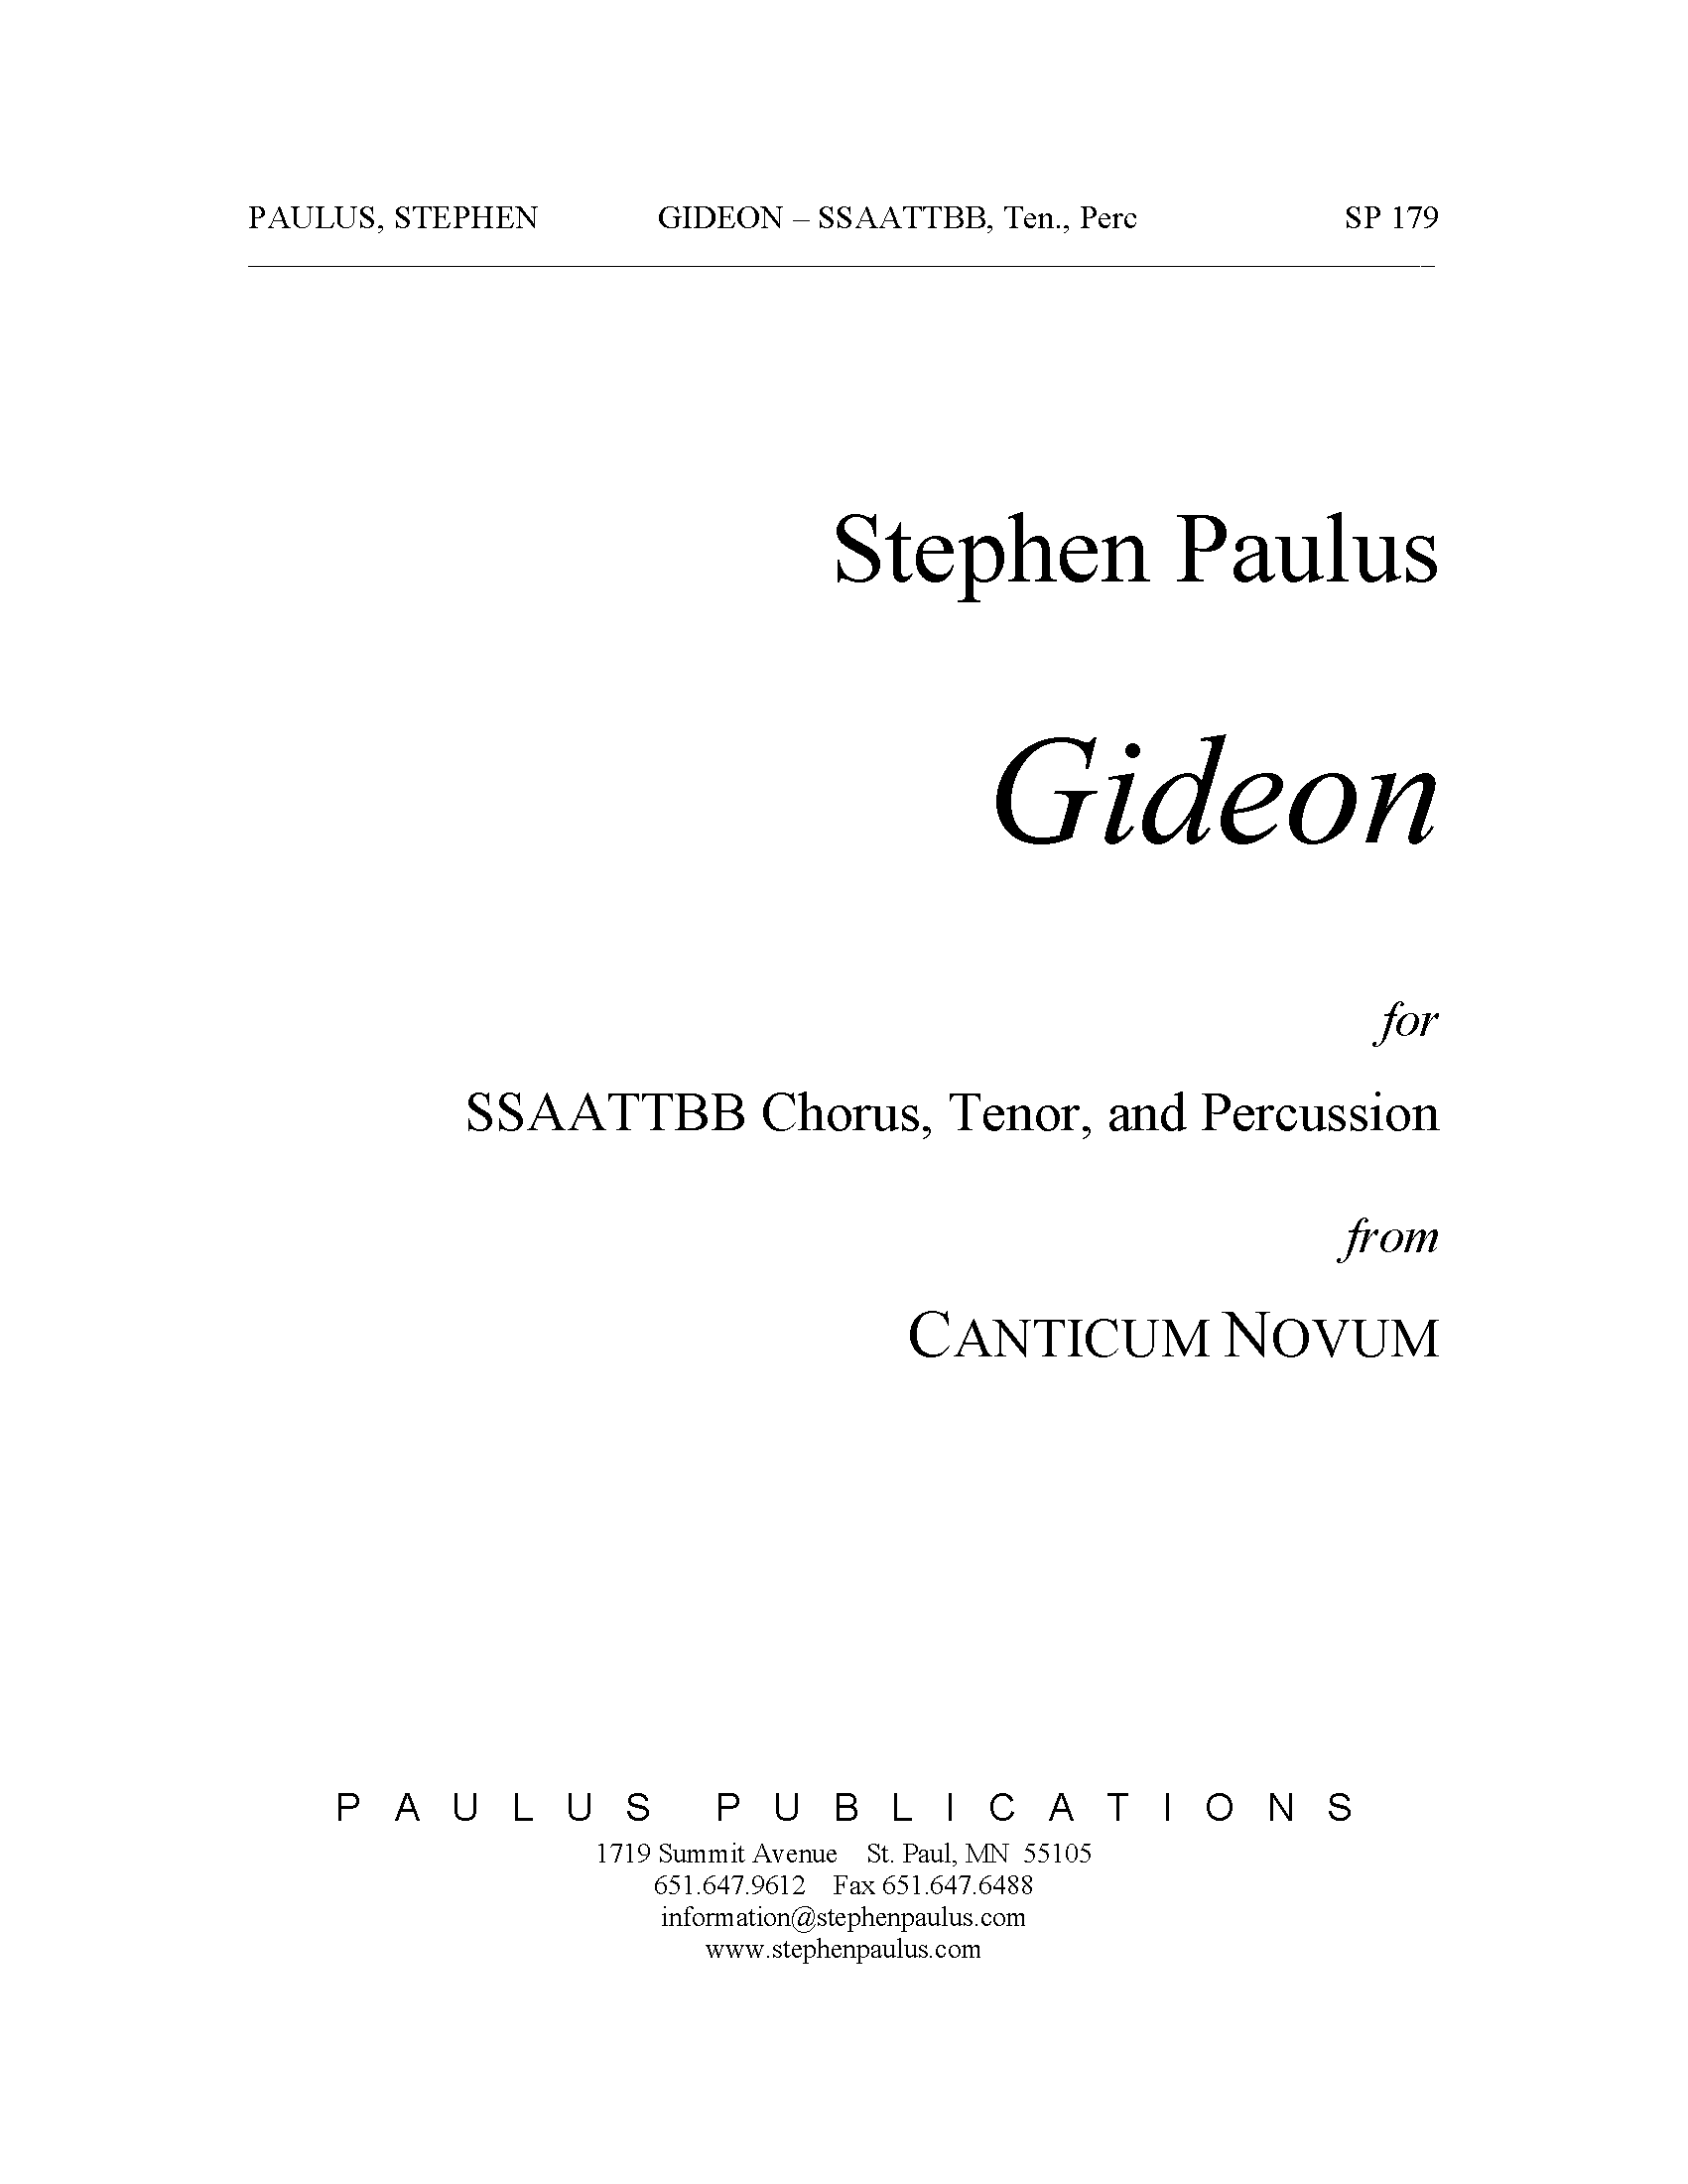 Gideon (from Canticum Novum) for SSAATTBB Chorus, Tenor & Percussion